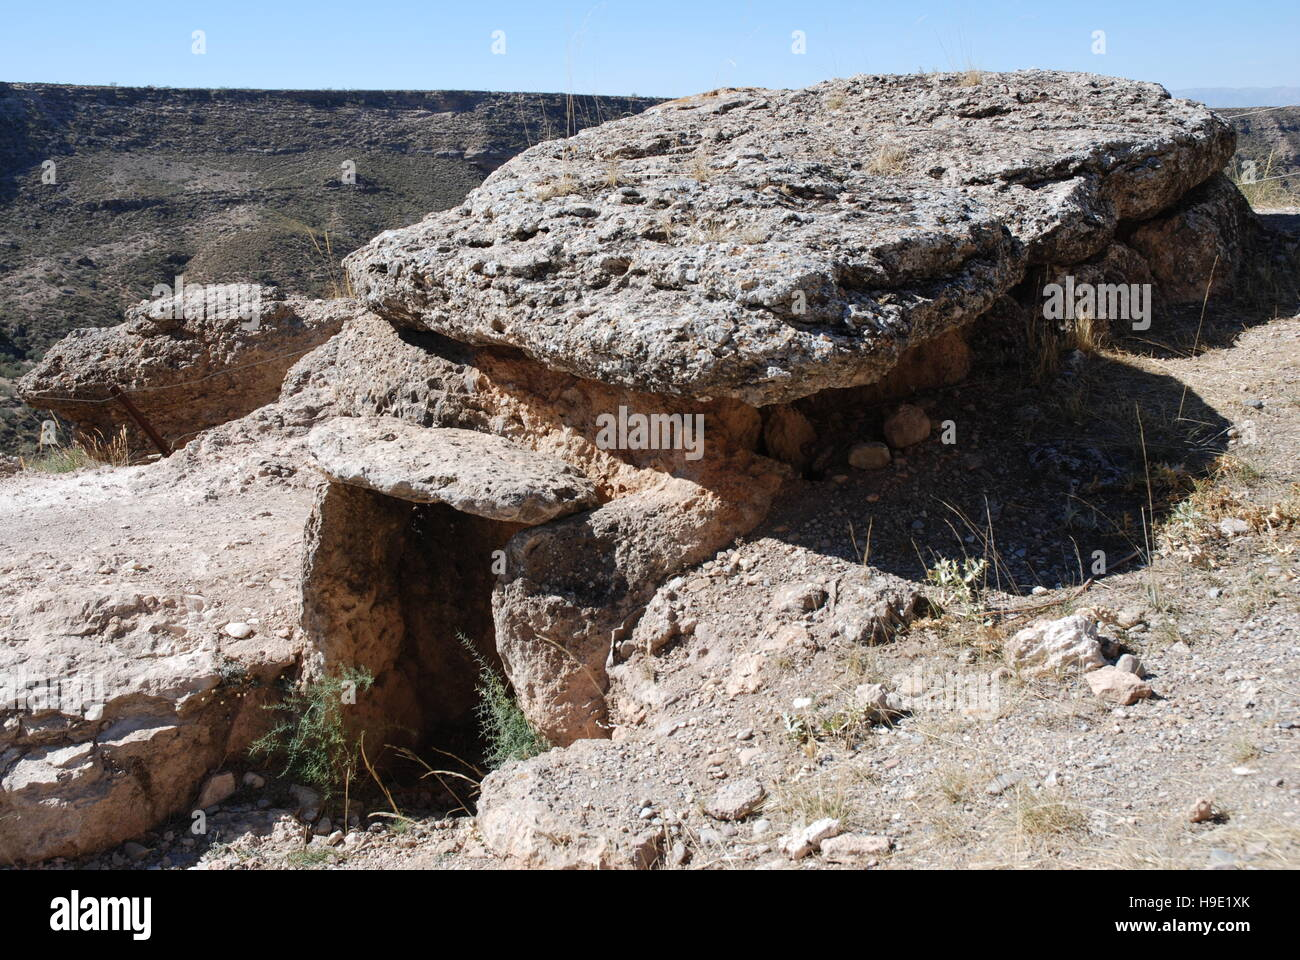 Part of the necropolis of burial tombs and Dolmen in the town of Gorafe near Granada Andalucia Spain. - Stock Image